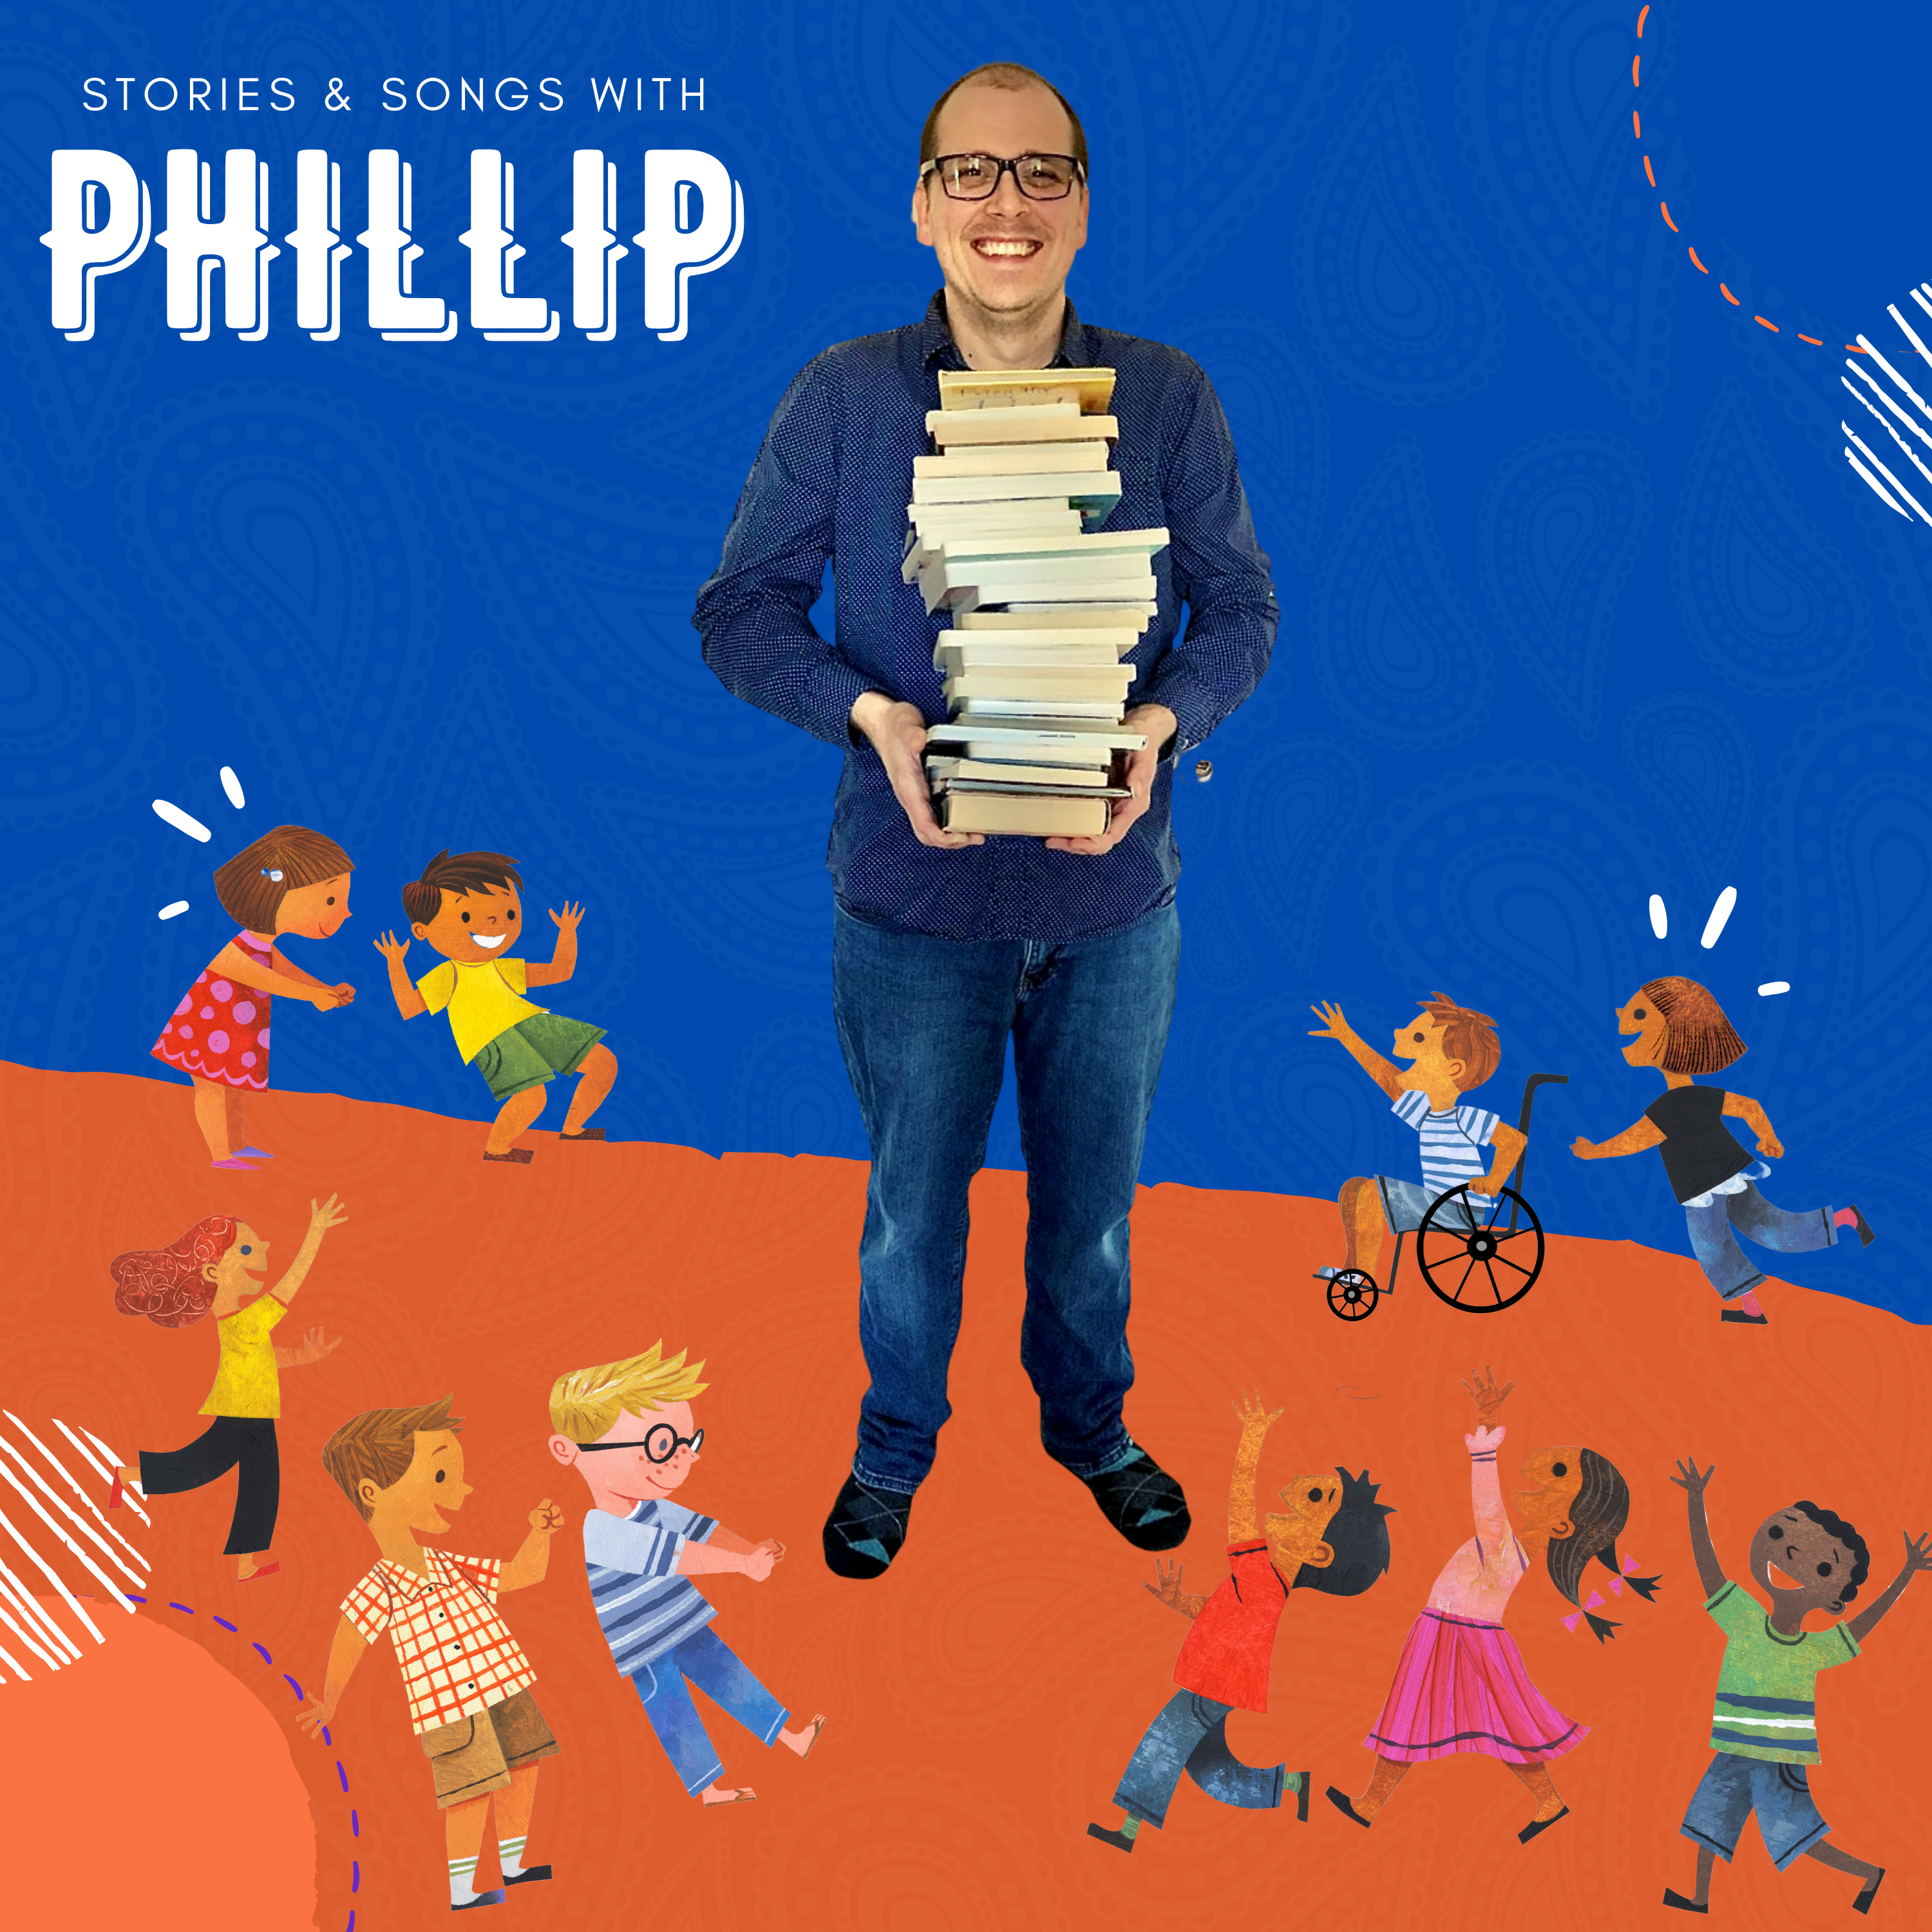 image shows man holding a stack of books. cartoon children run and play everywhere